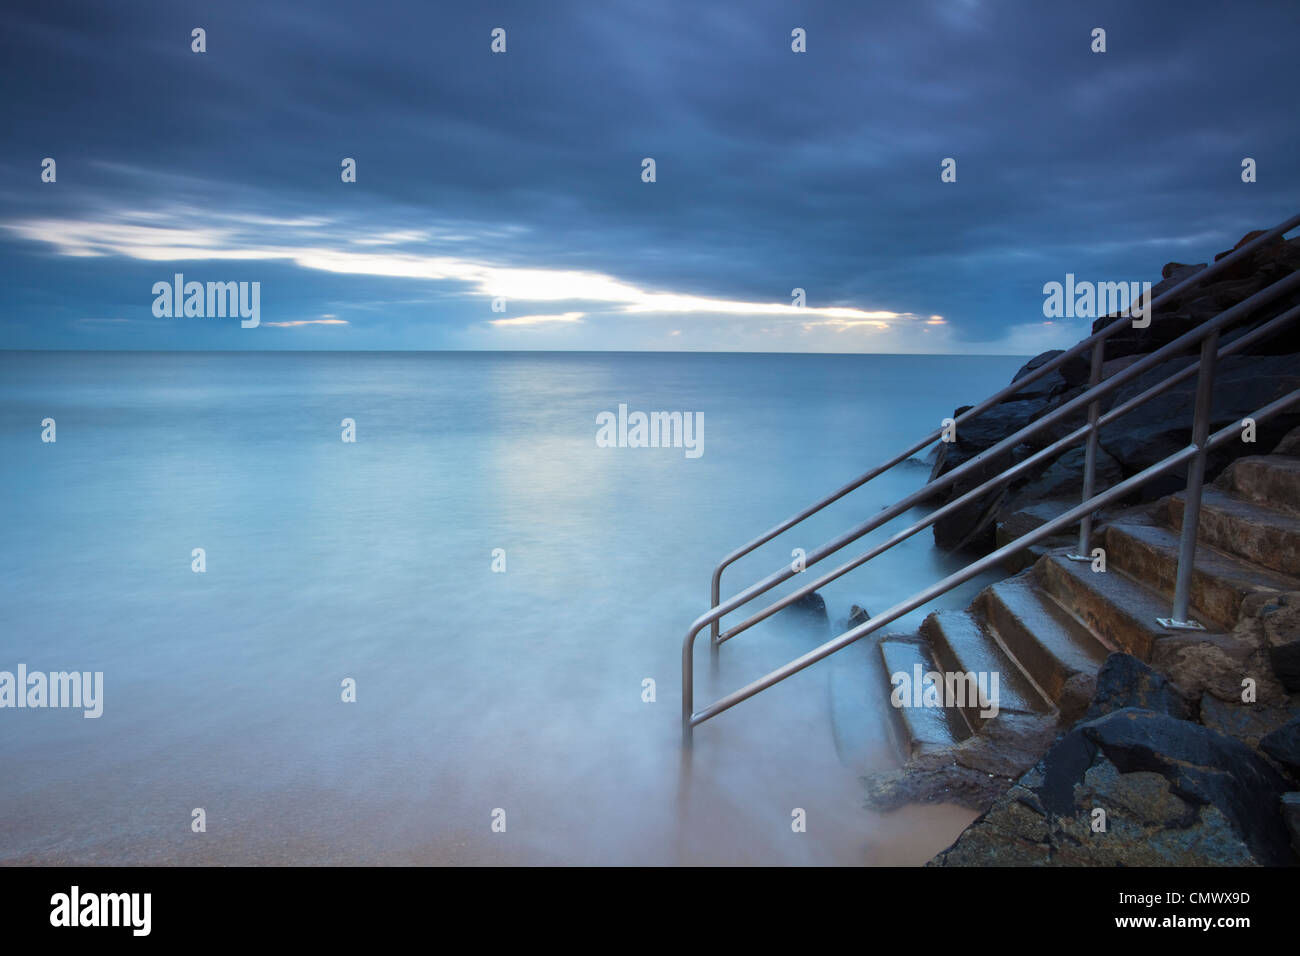 Lavaggio onde su gradini che conduce al mare. Machans Beach, Cairns, Queensland, Australia Foto Stock